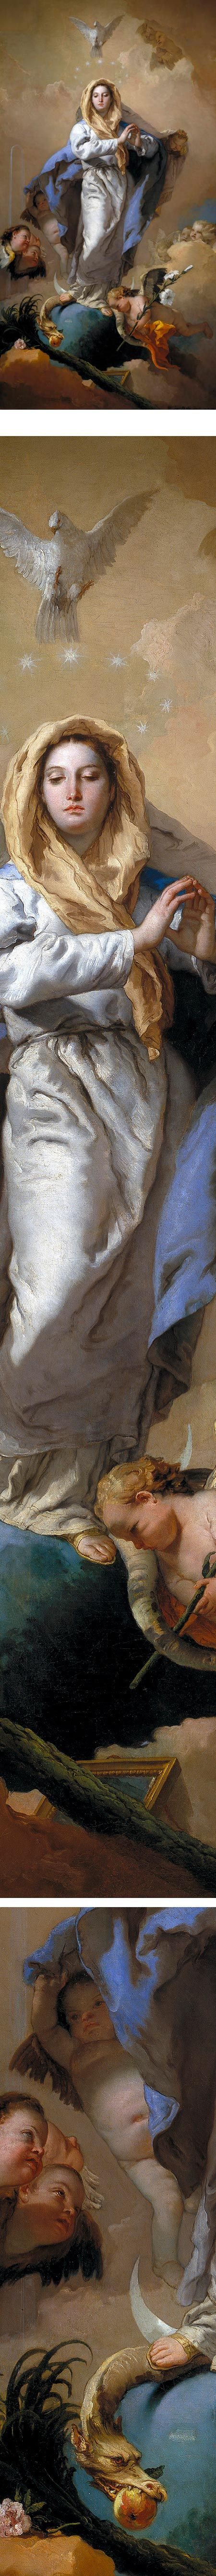 The Immaculate Conception - Giambattista Tiepolo